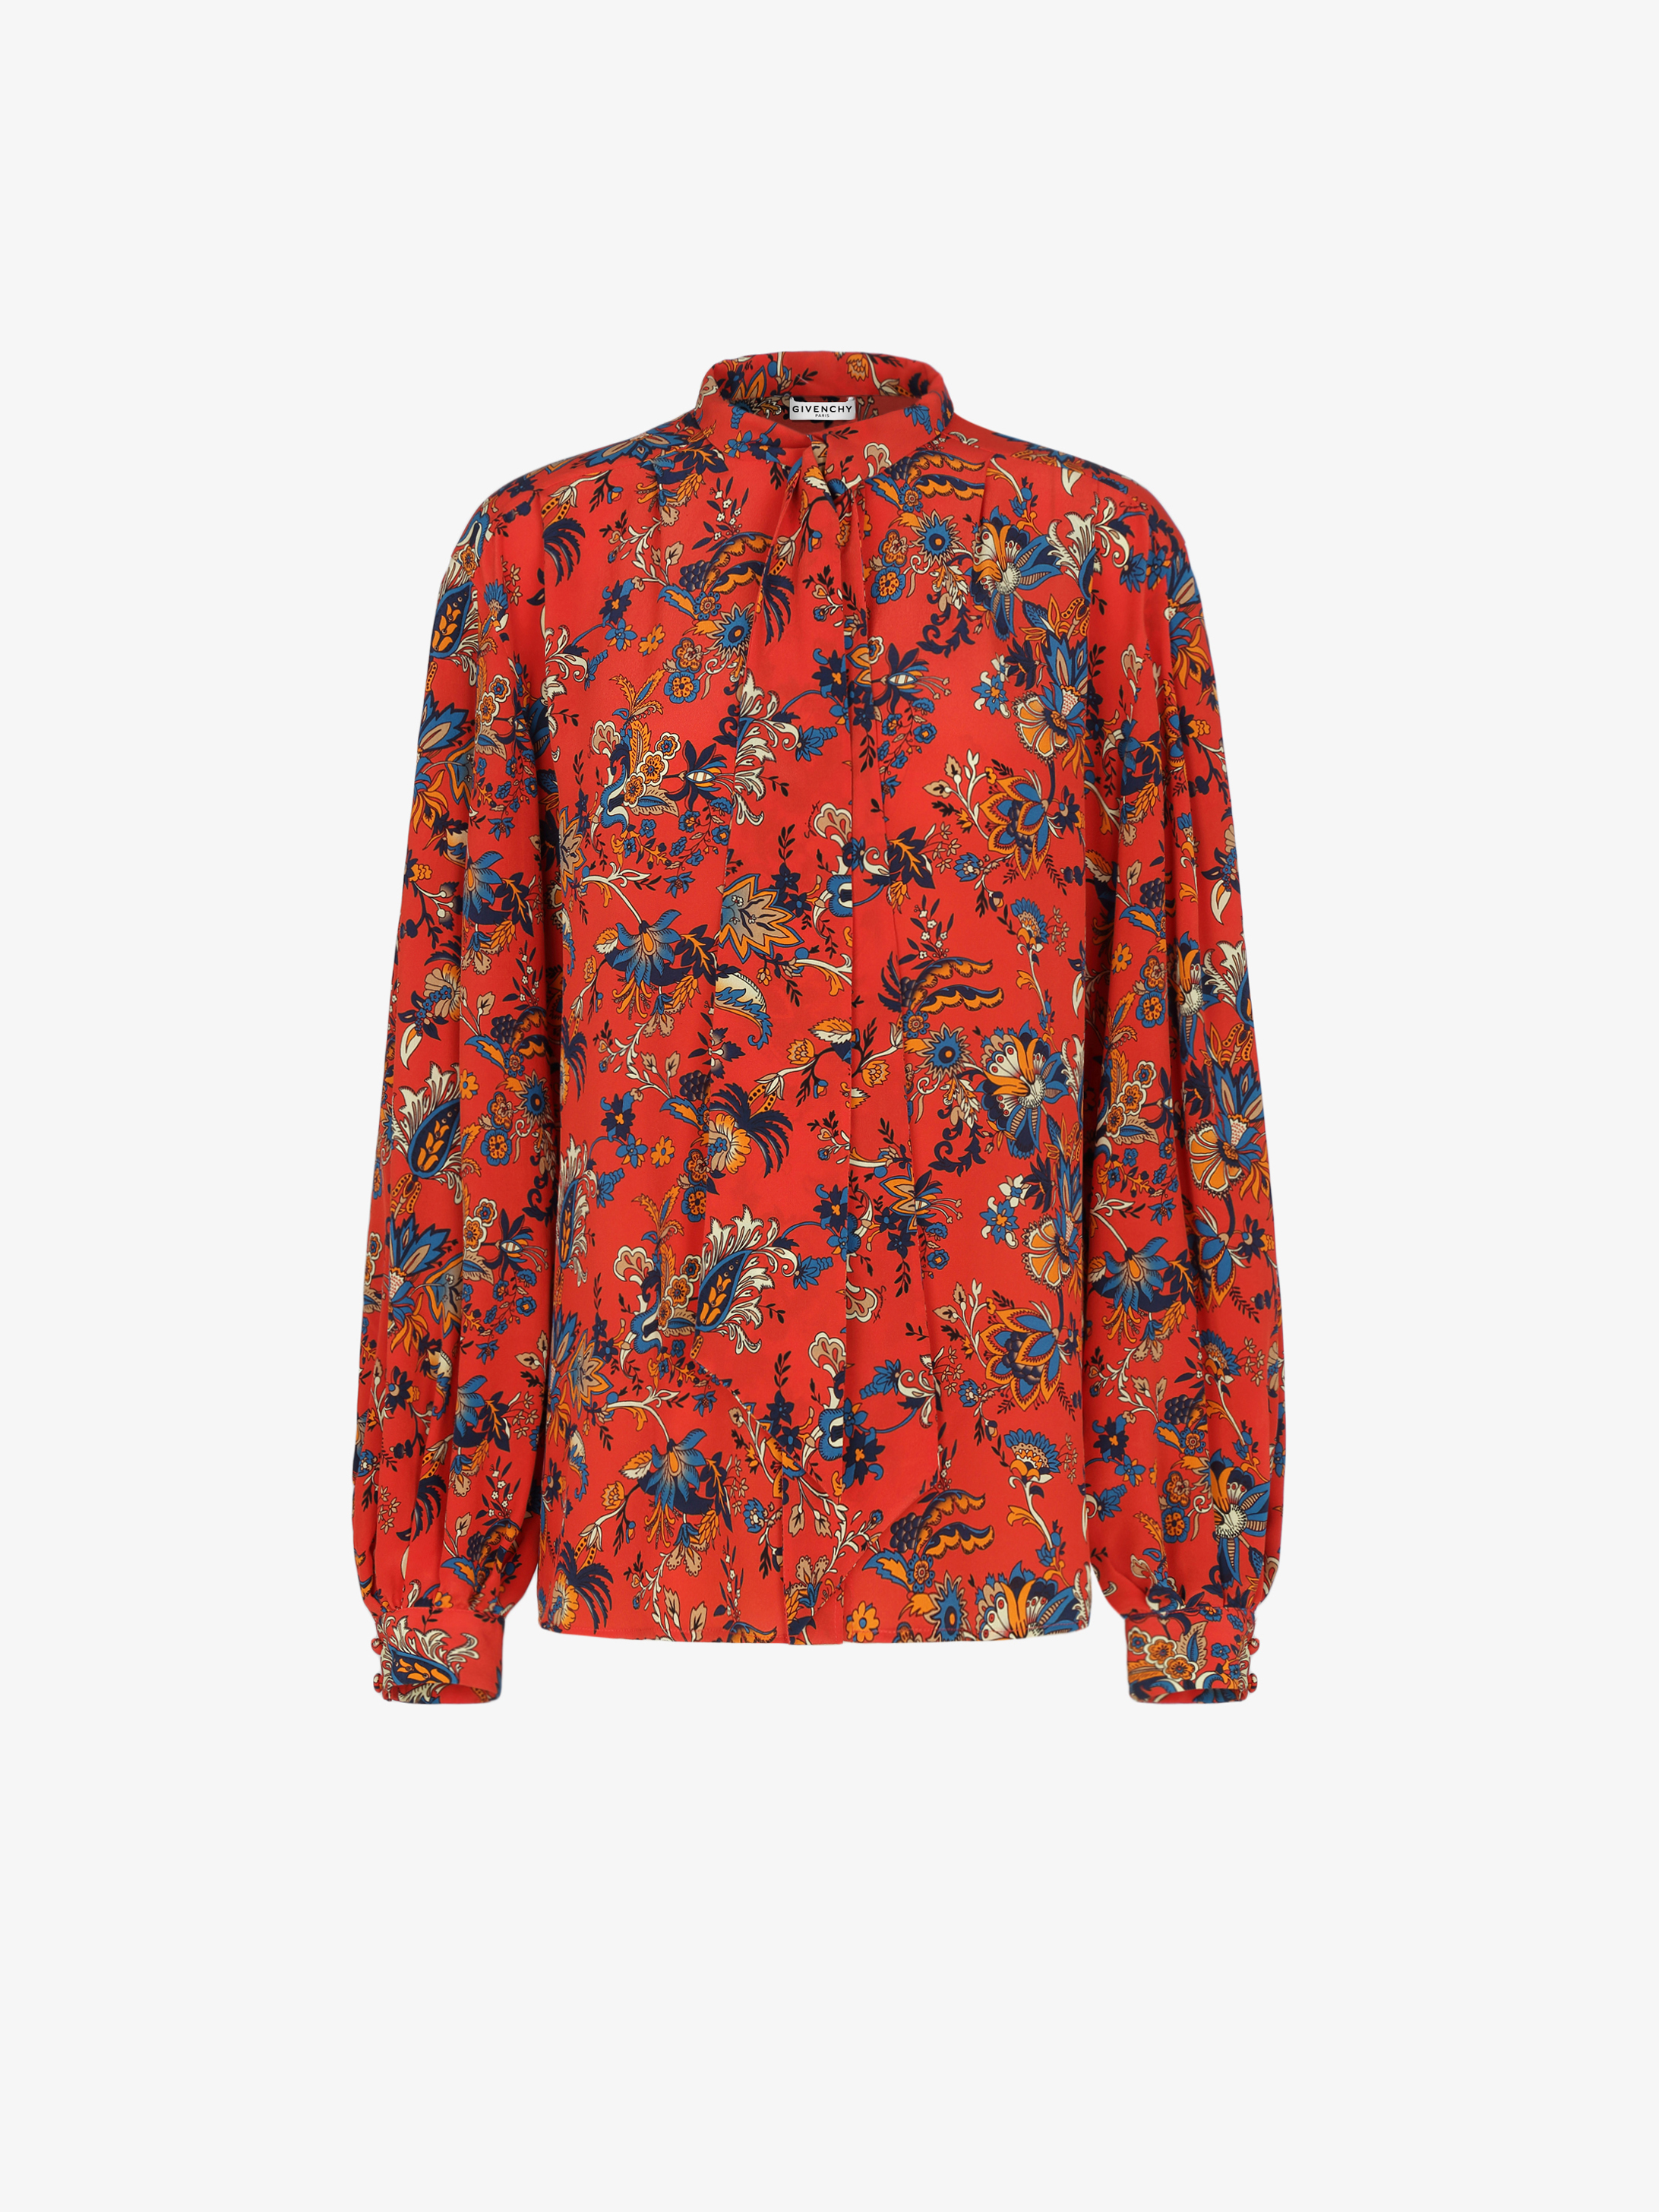 Blouse in silk with floral print and ascot tie